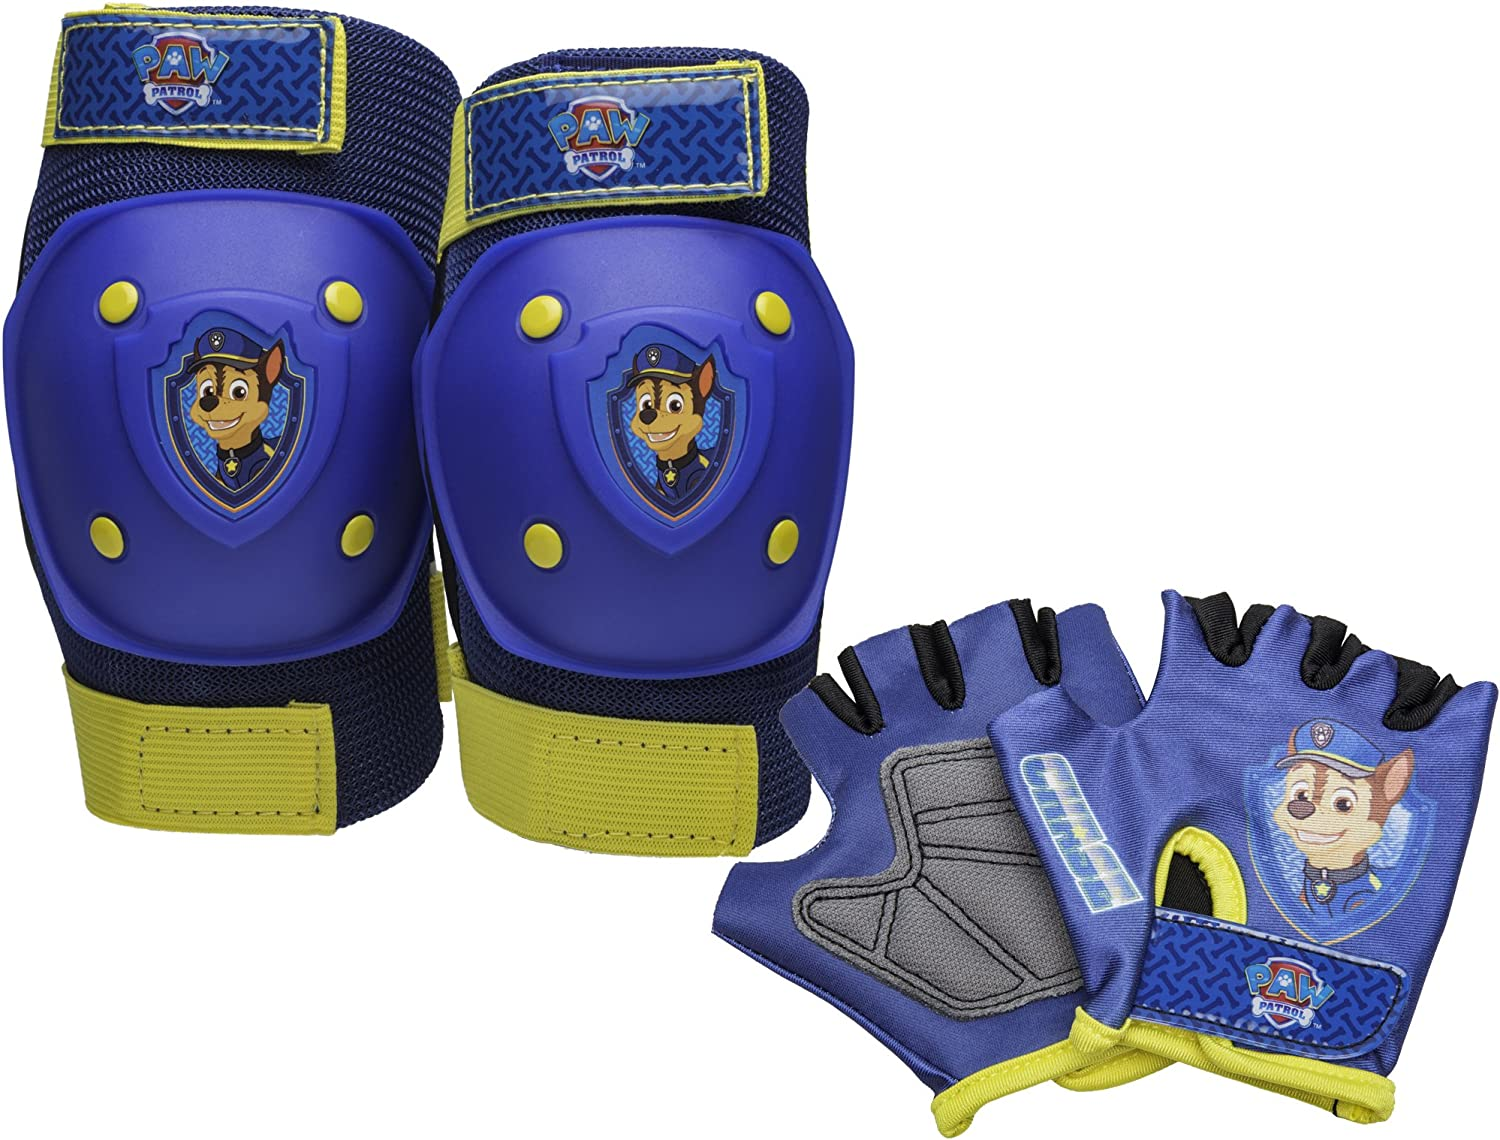 Safety GLOVES+ELBOW+KNEE PAD SET Scooter Skates Toddler Paw Patrol BIKE HELMET